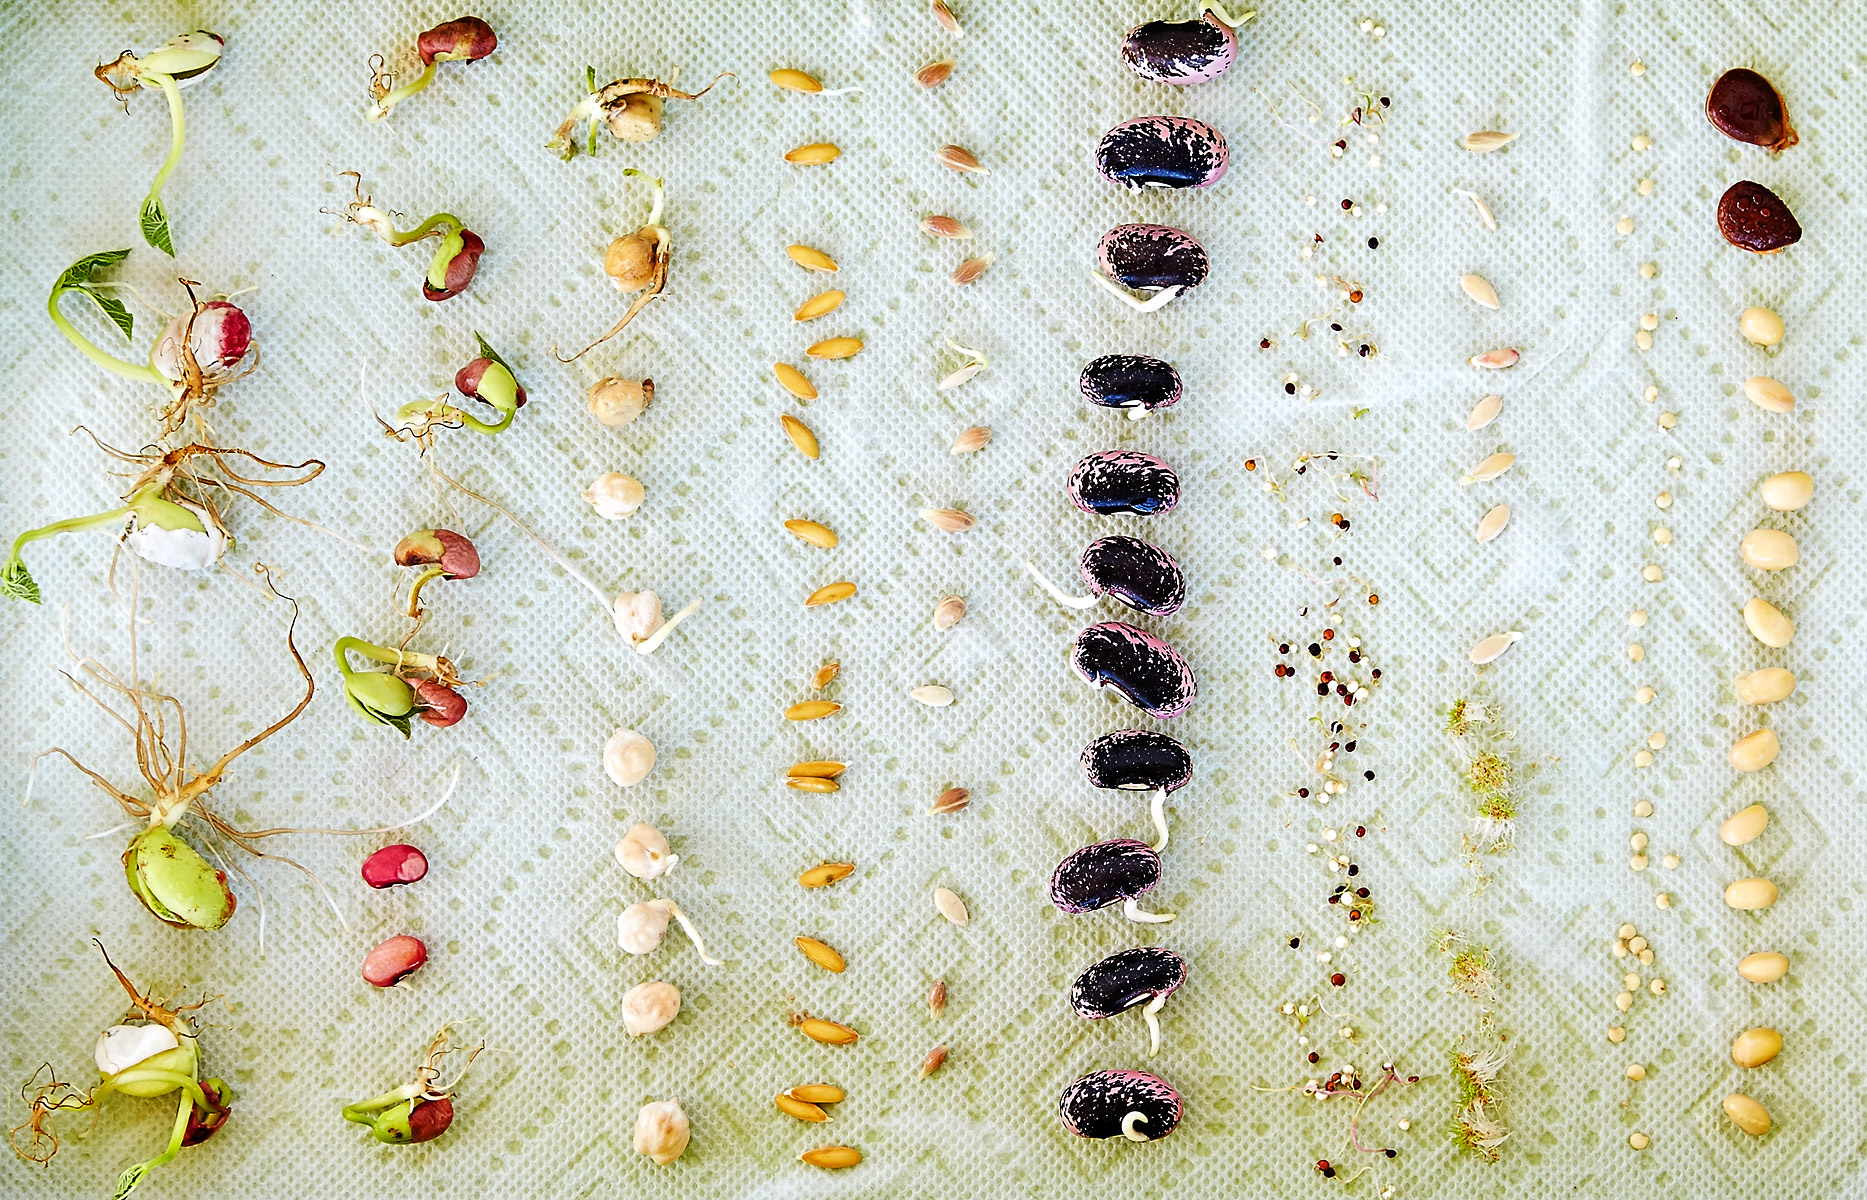 exploratorium-kitchen_seeds